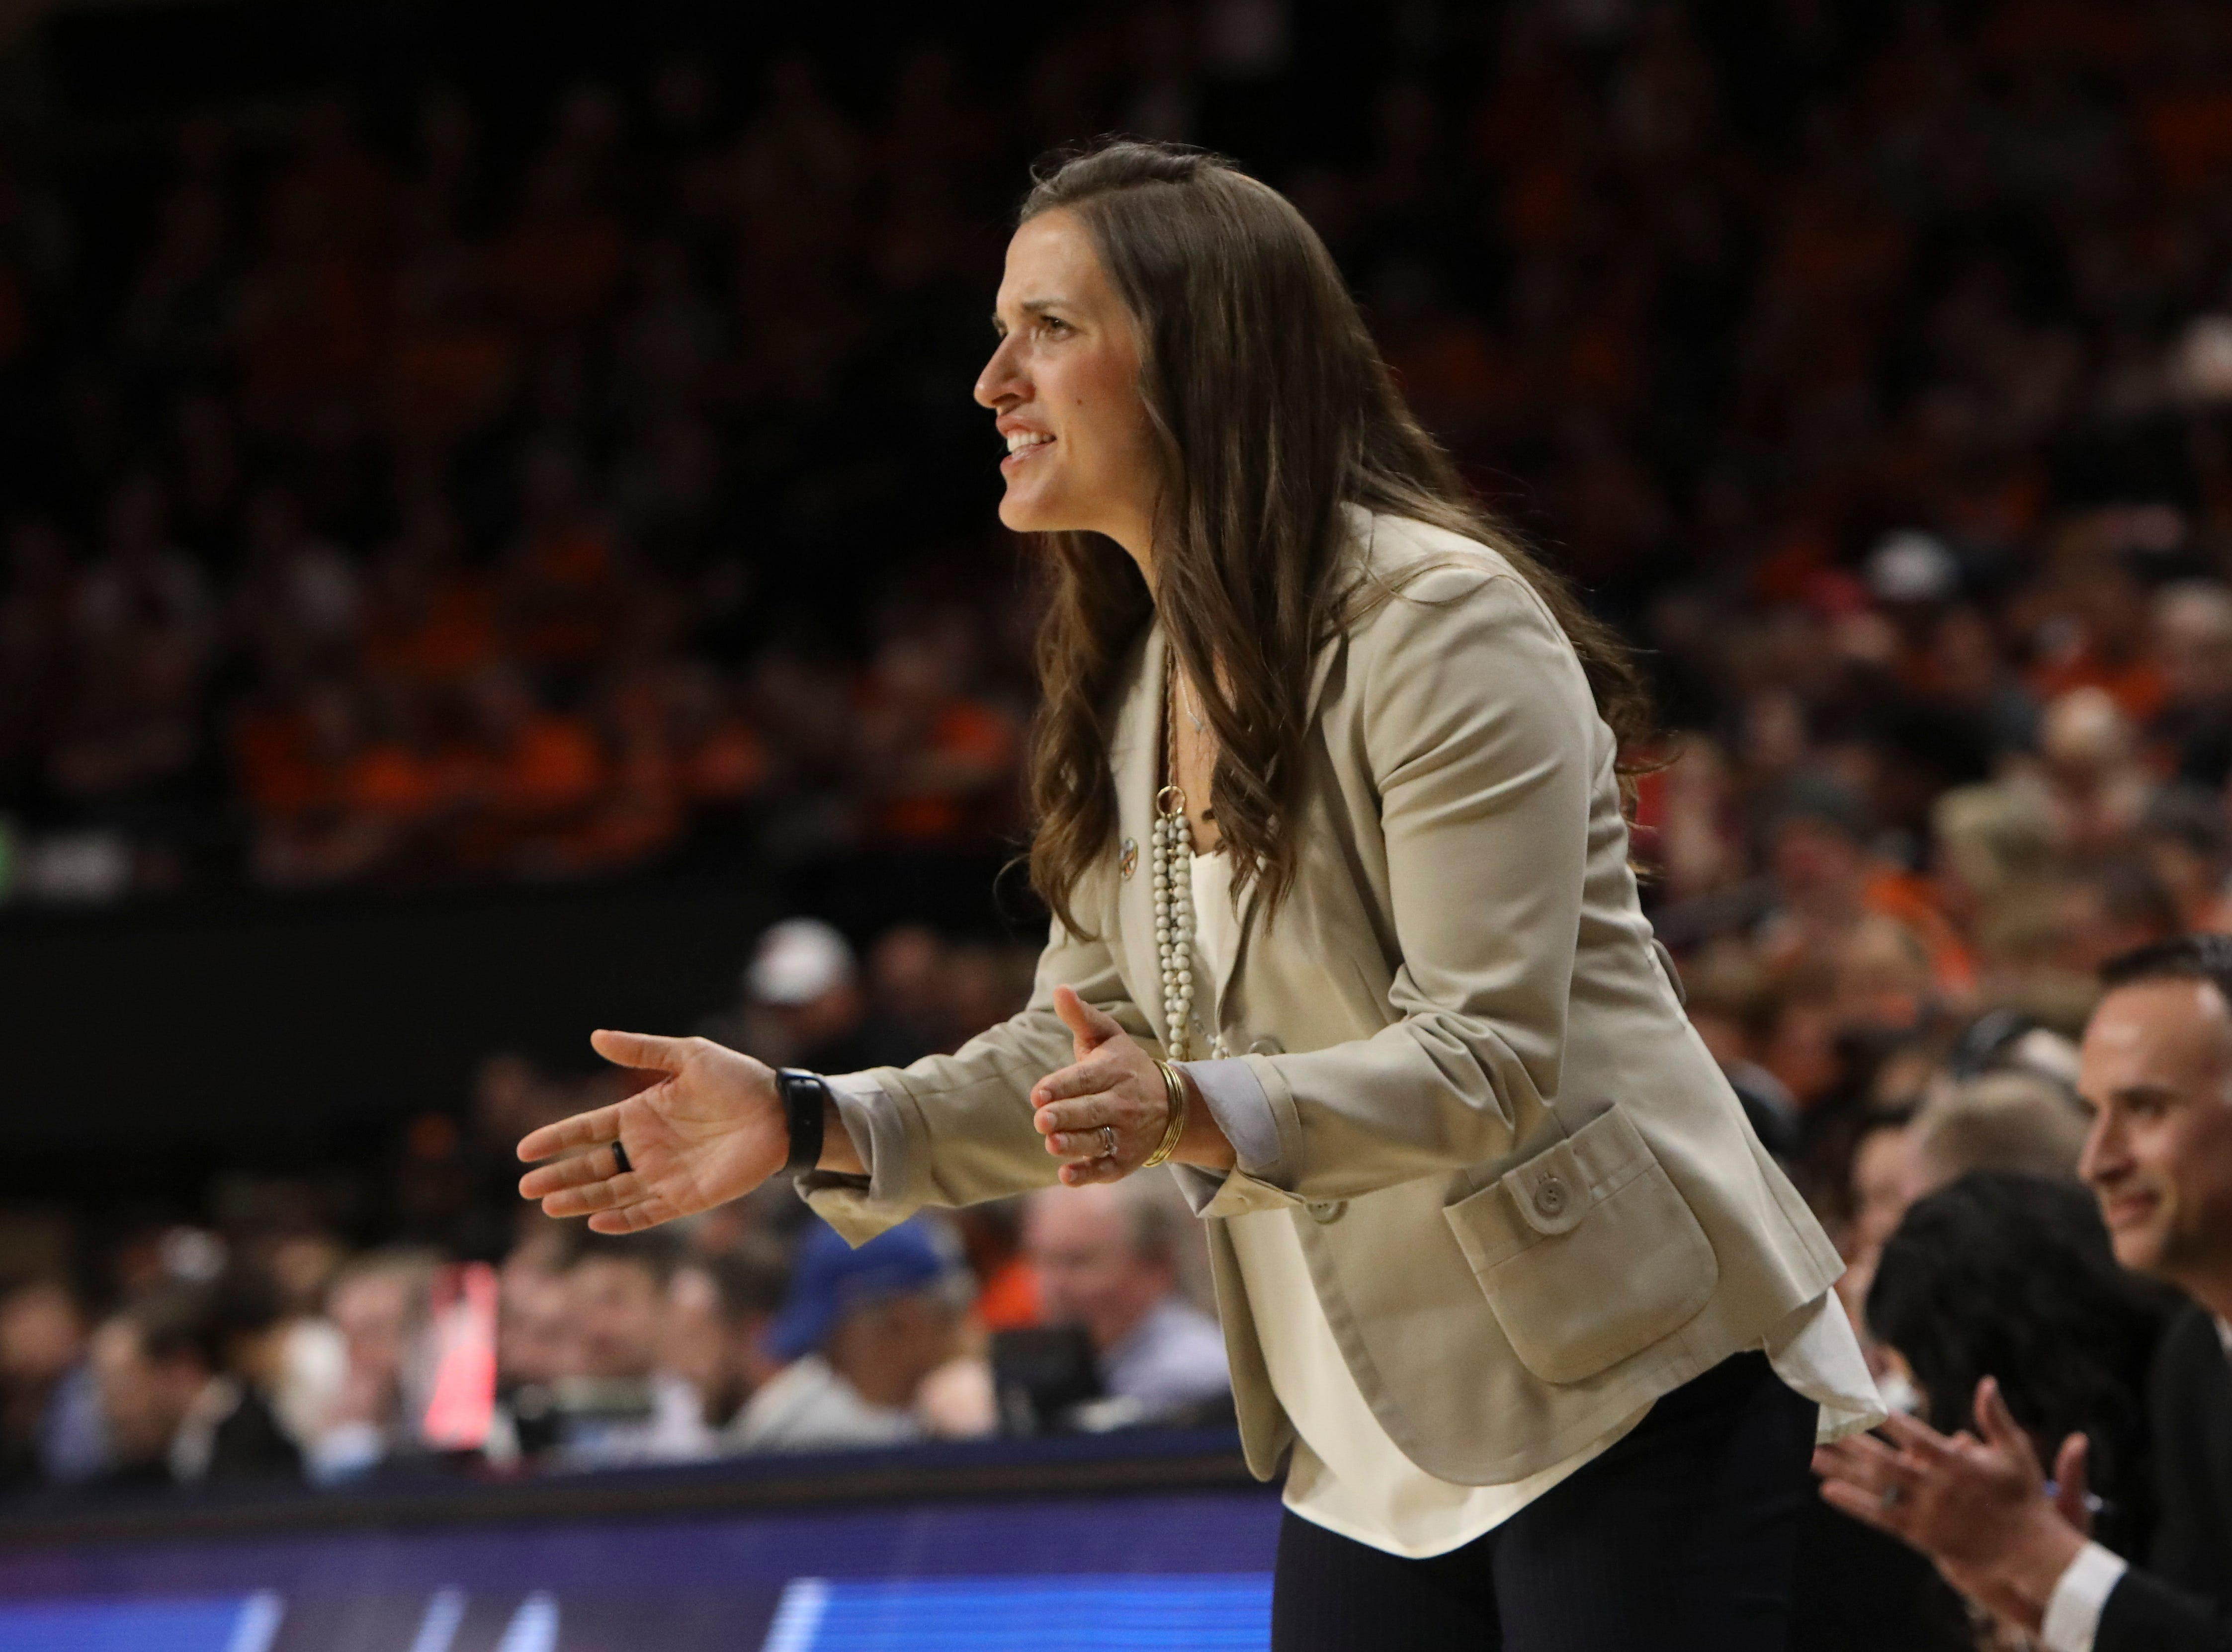 Gonzaga head coach Lisa Fortier calls out to players during the first half of a second-round game of the NCAA women's college basketball tournament against Oregon State in Corvallis, Ore., Monday, March 25, 2019. Oregon State won 76-70 (AP Photo/Amanda Loman)